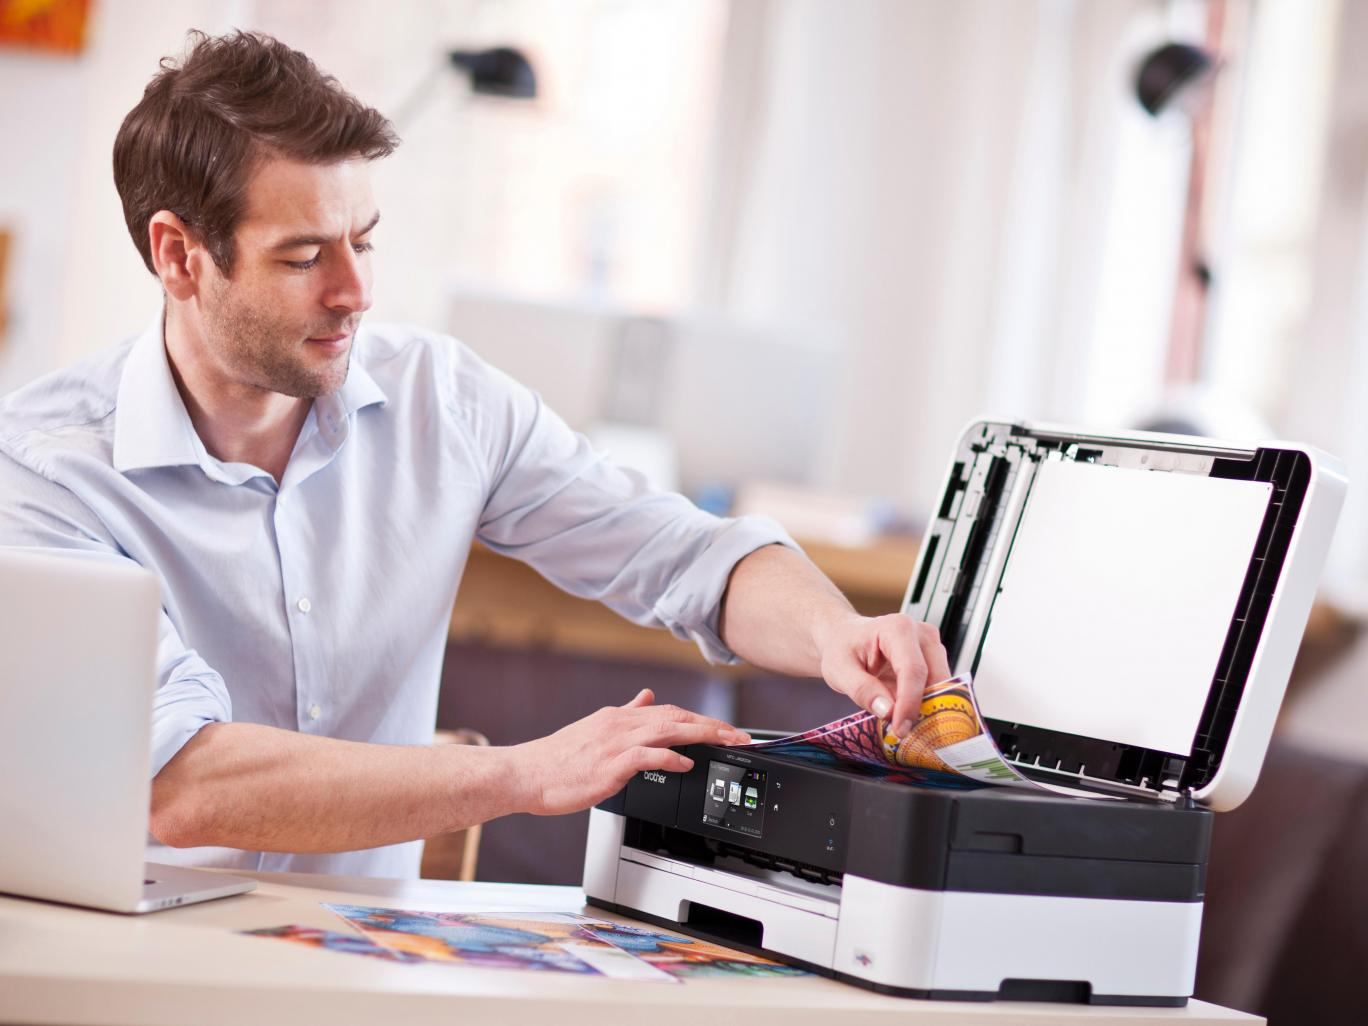 Cara Menginstall Printer Seri Lama di OS Windows 10